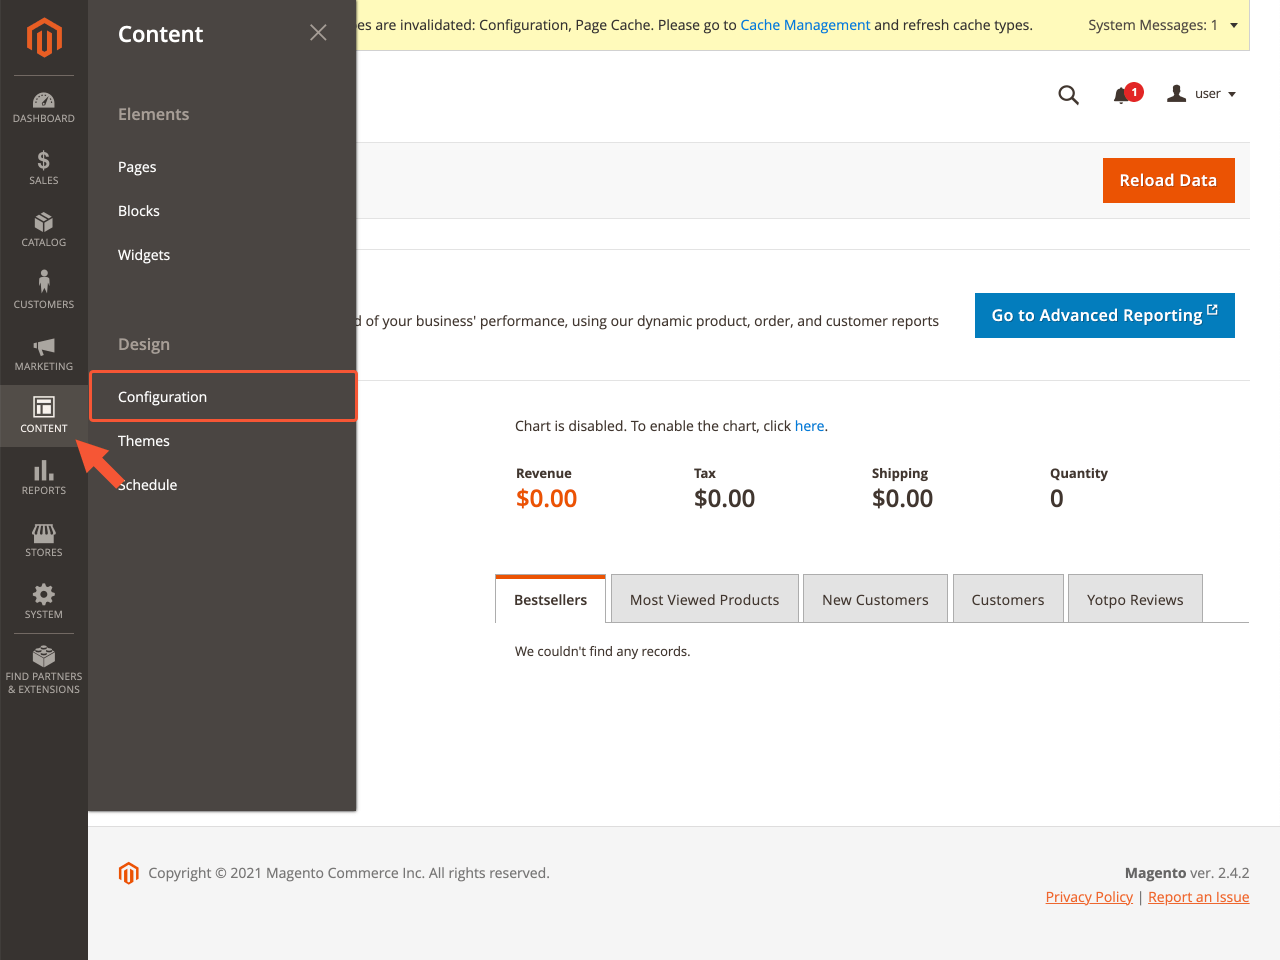 Magento sidebar menu with the highlighted Configuration section